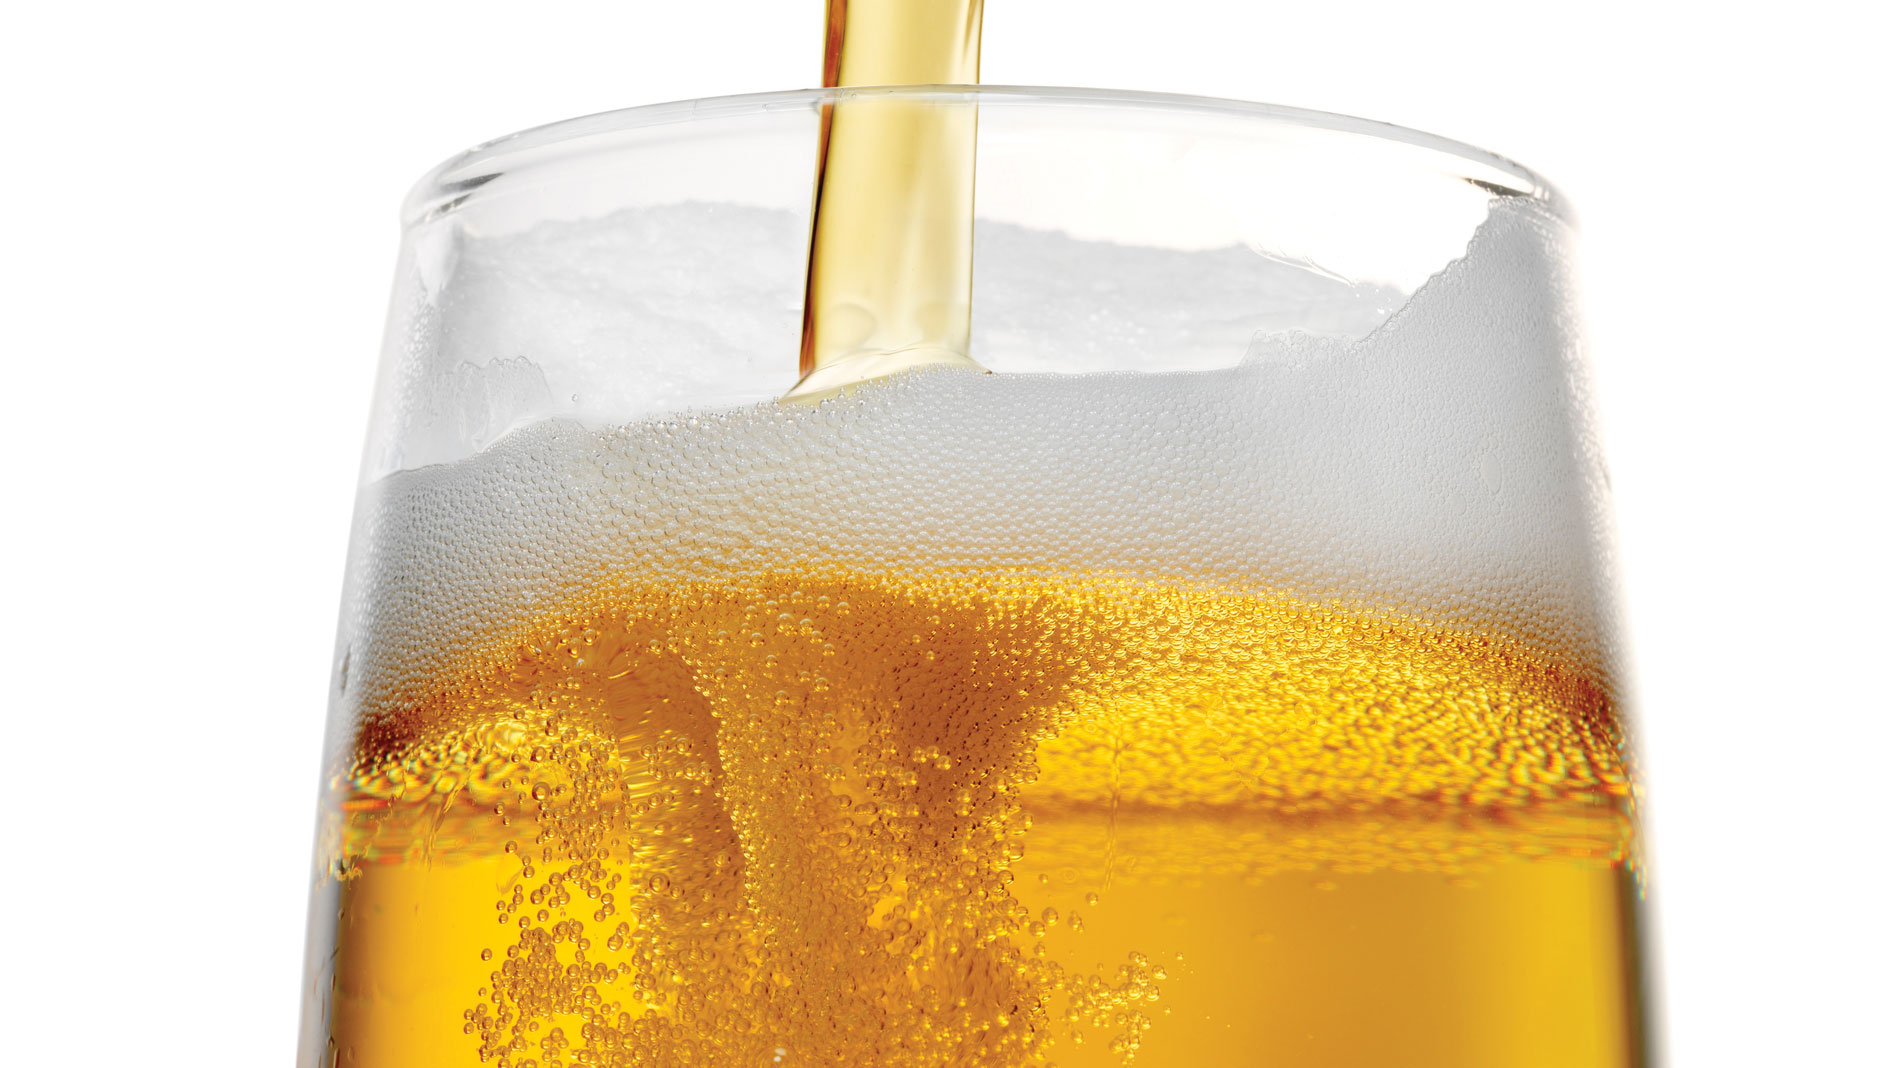 The St. Louis beer scene has a lot to be proud of when it comes to clean fermentation.